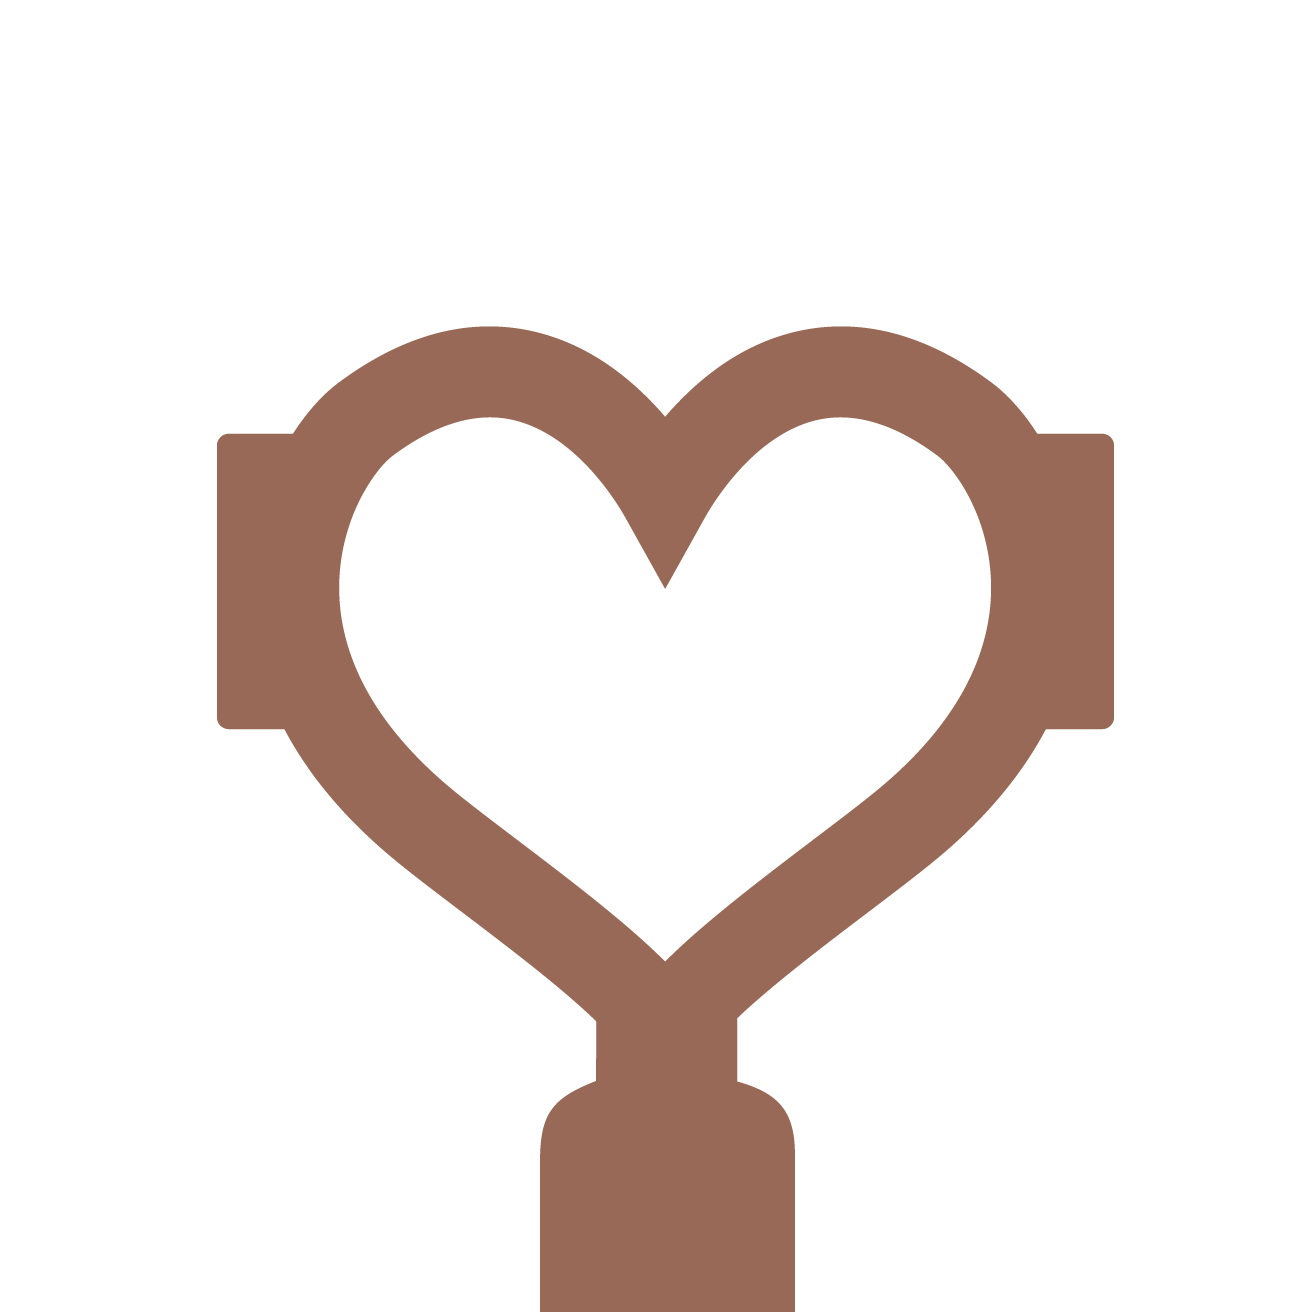 Rocket Espresso Mozzafiato Cronometro Type V Coffee Machine